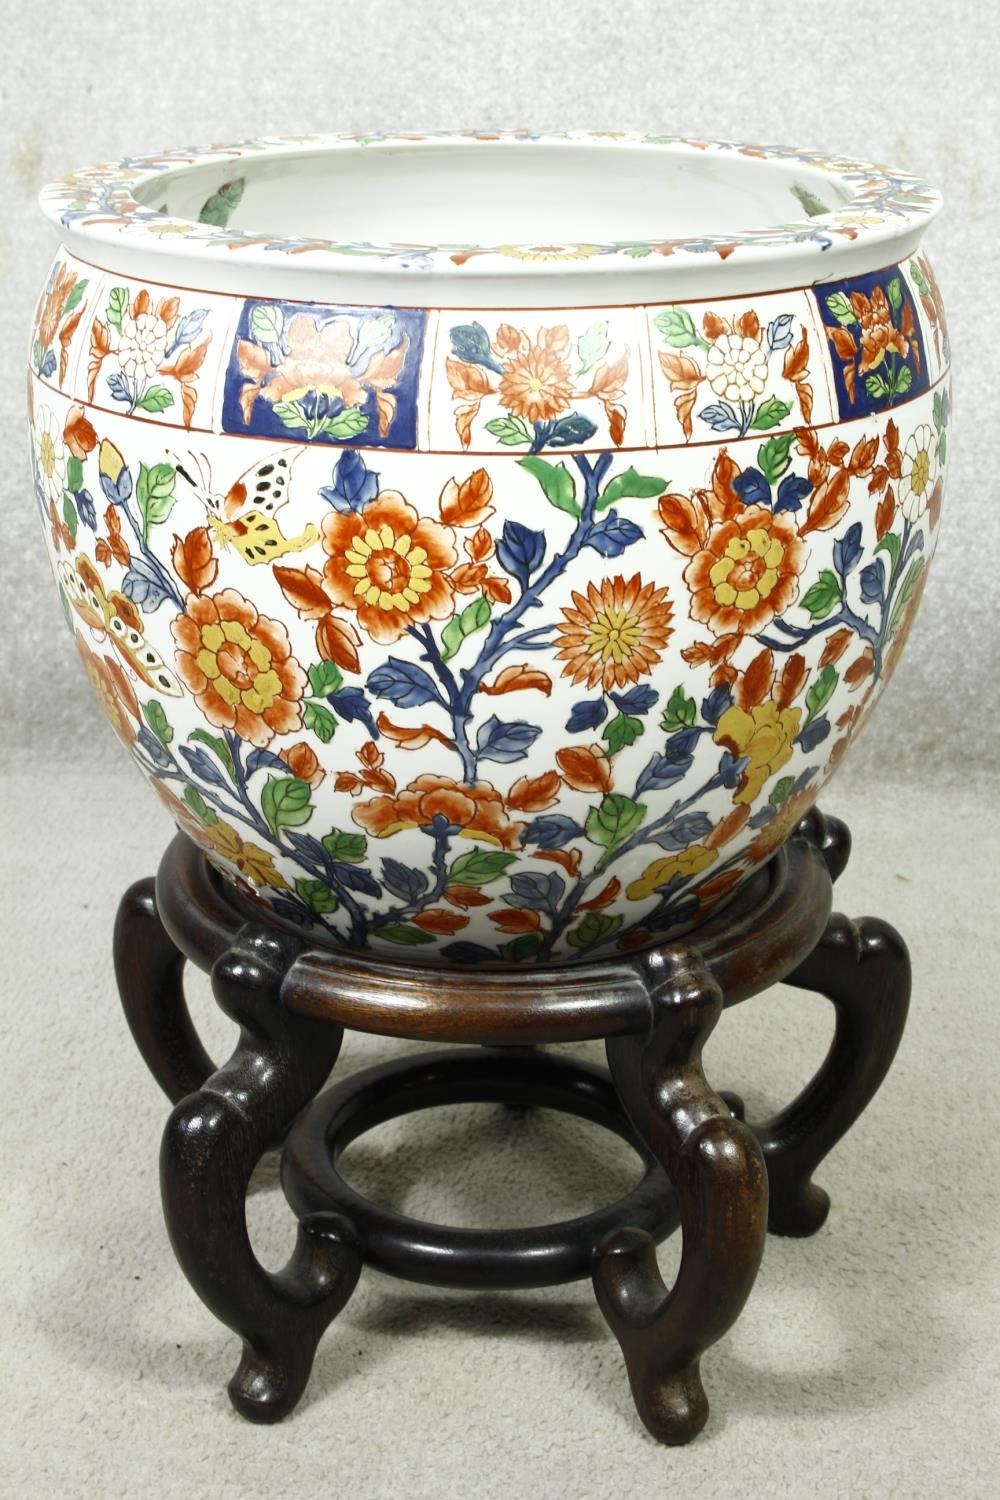 A pair of early 20th century glazed Chinese Imari ceramic planters/fish bowls on carved hardwood - Image 5 of 11